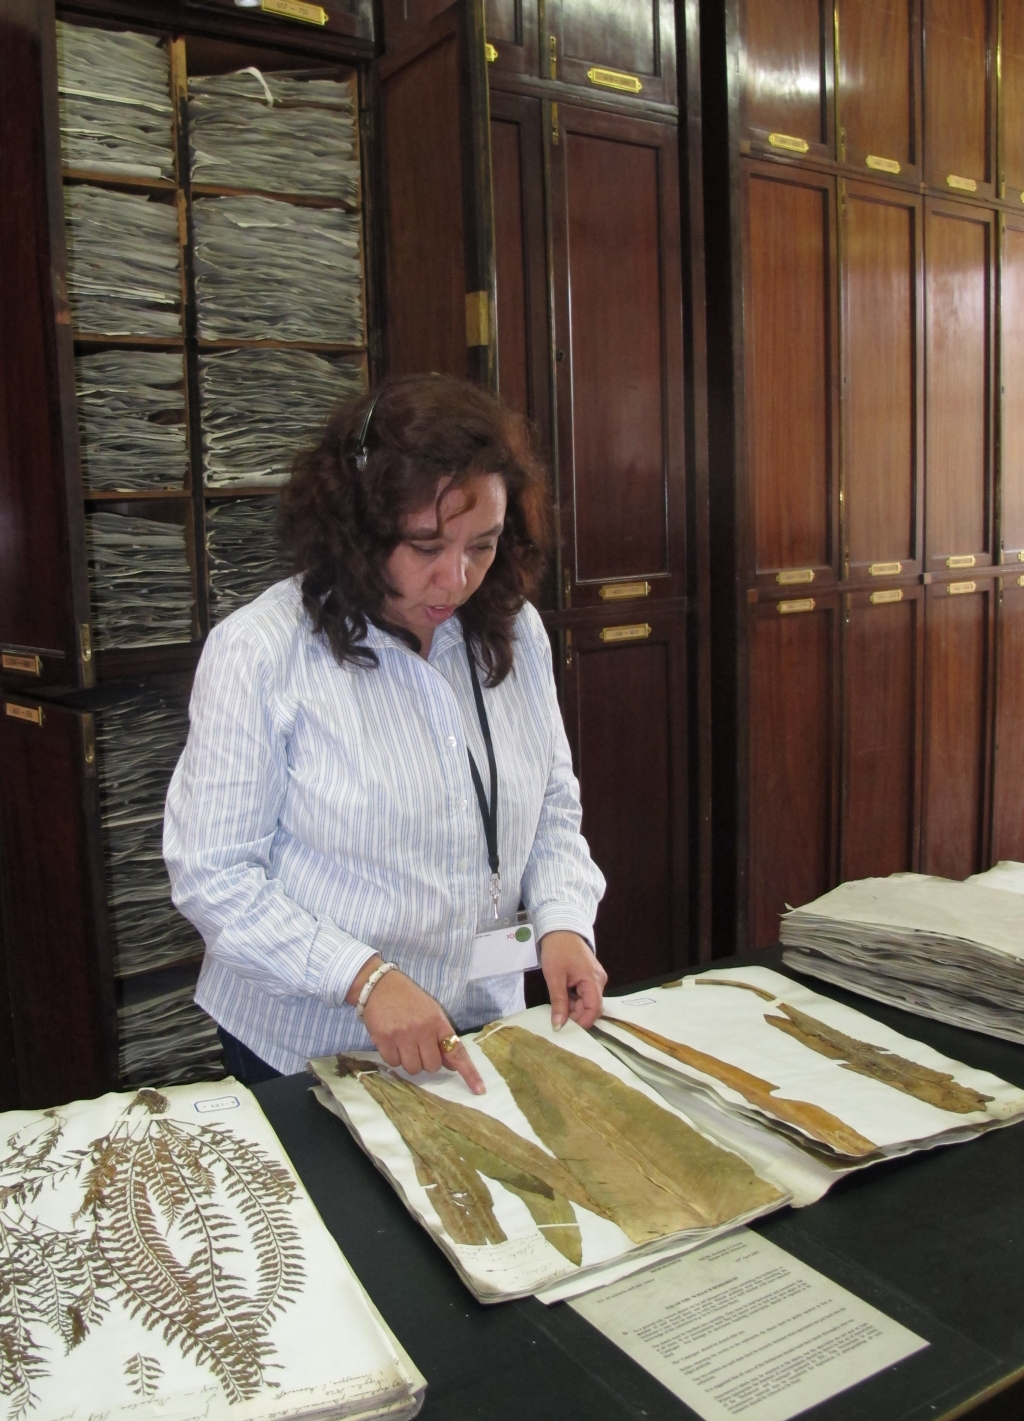 Sangeeta Rajbhandary using the EIC Herbarium at Royal Botanic Gardens, Kew